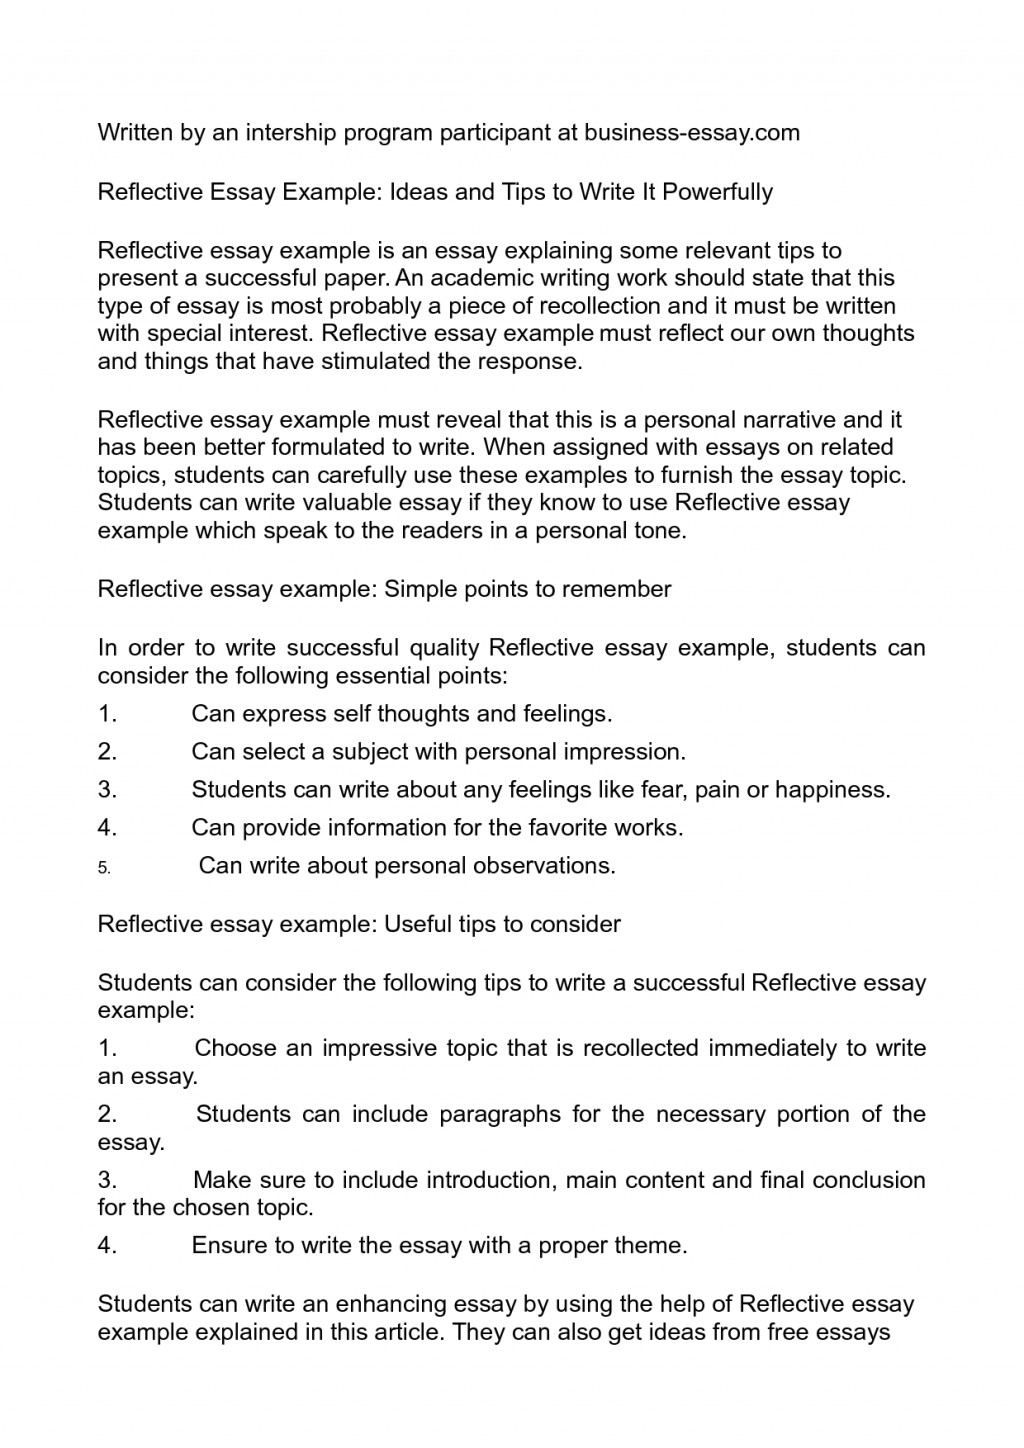 002 Reflective Essay Definition Samples Self Reflections